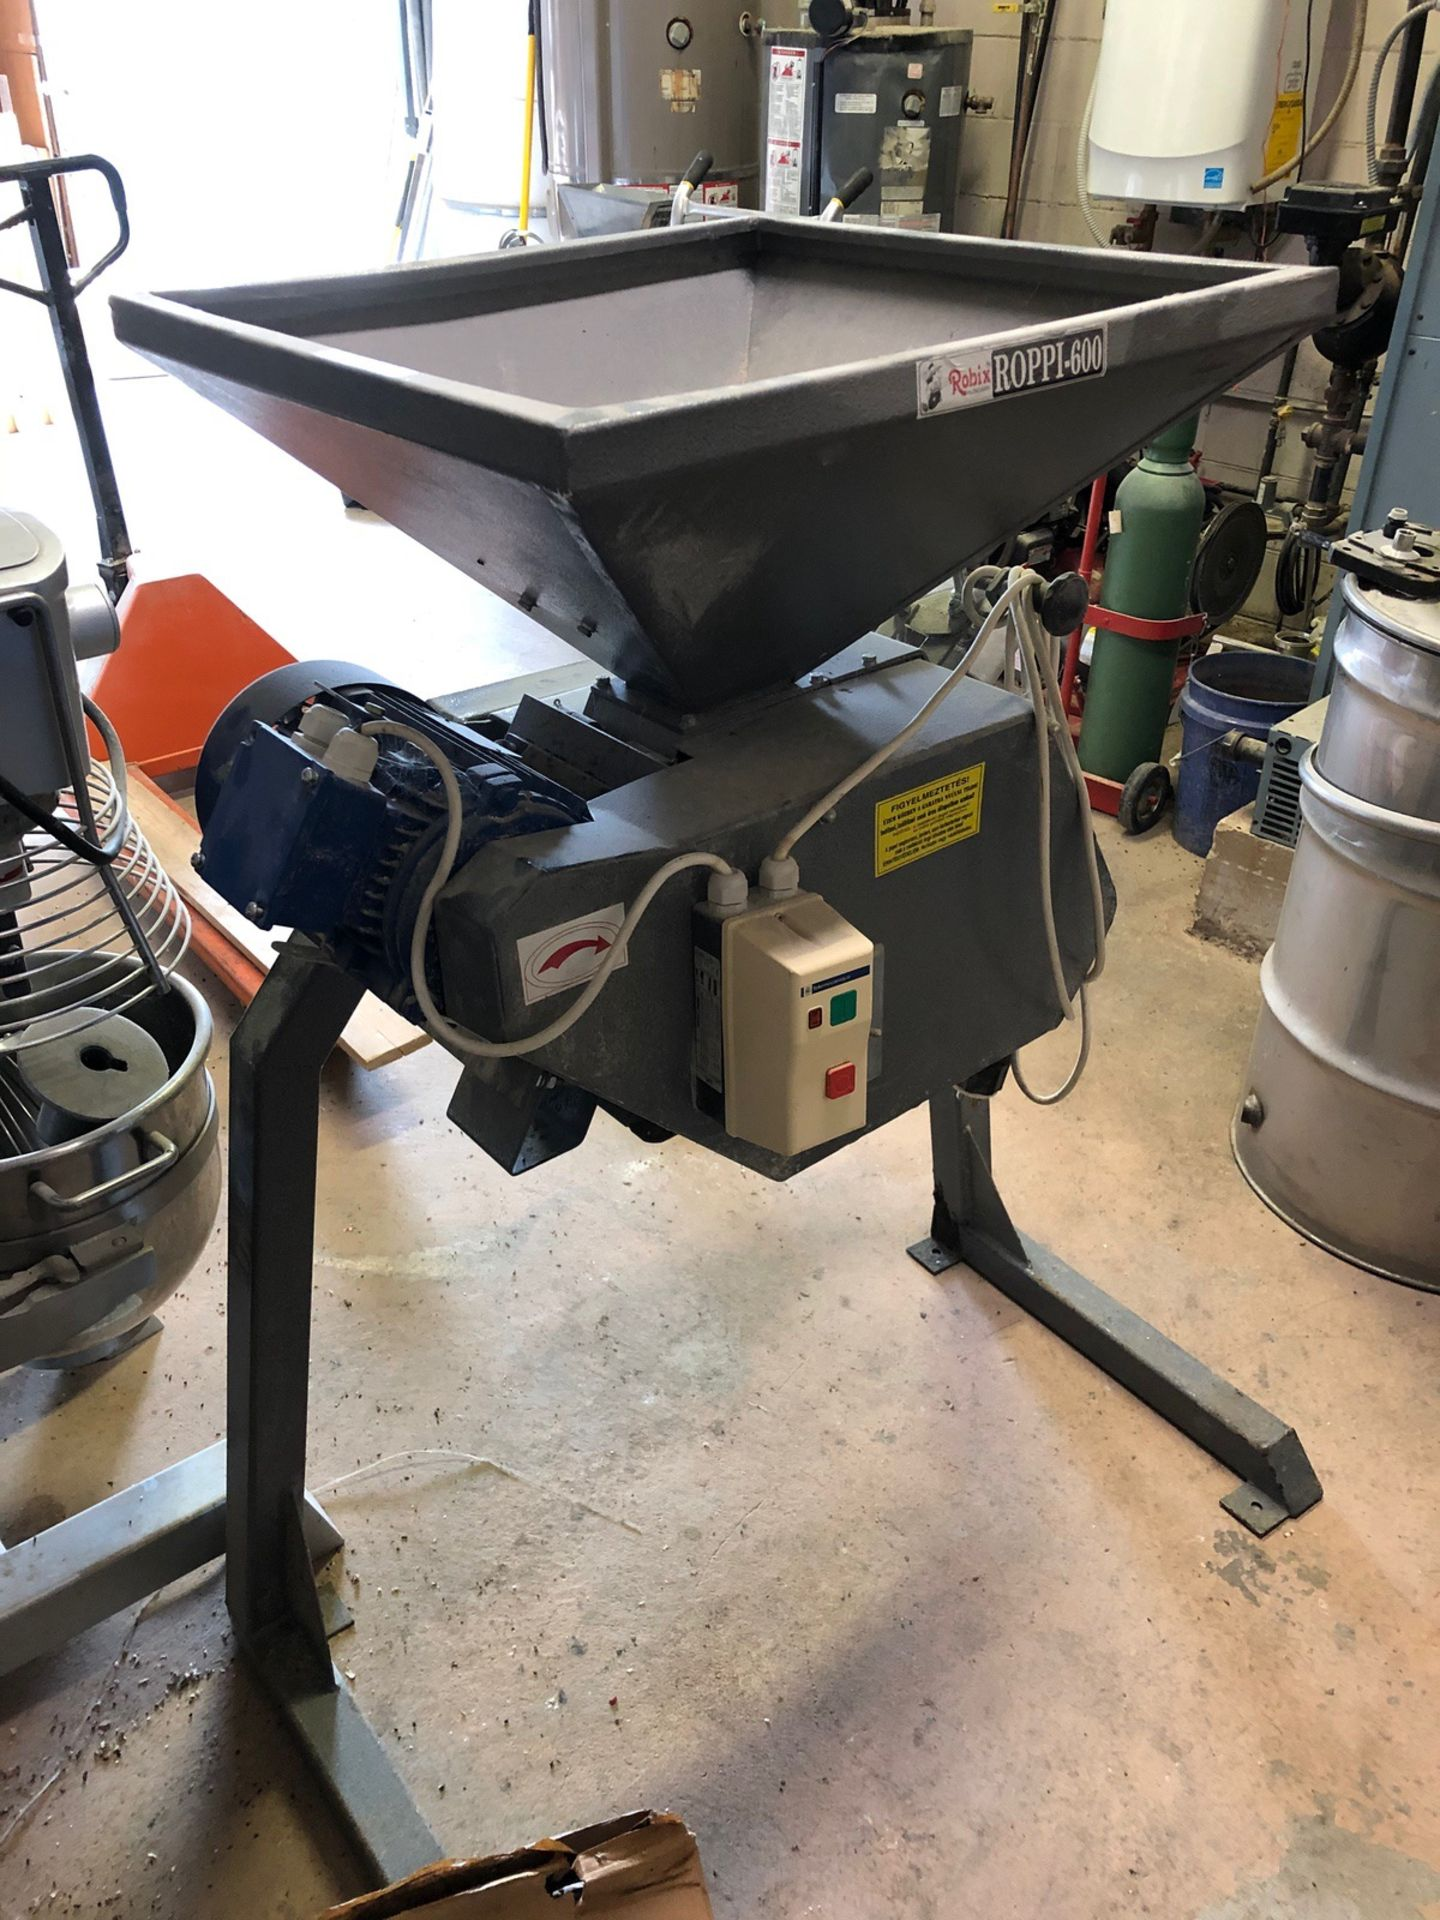 Lot 23A - Robix Roppi-600 Malt Mill, 1HP | Sub to Bulk | Rig Fee: $75